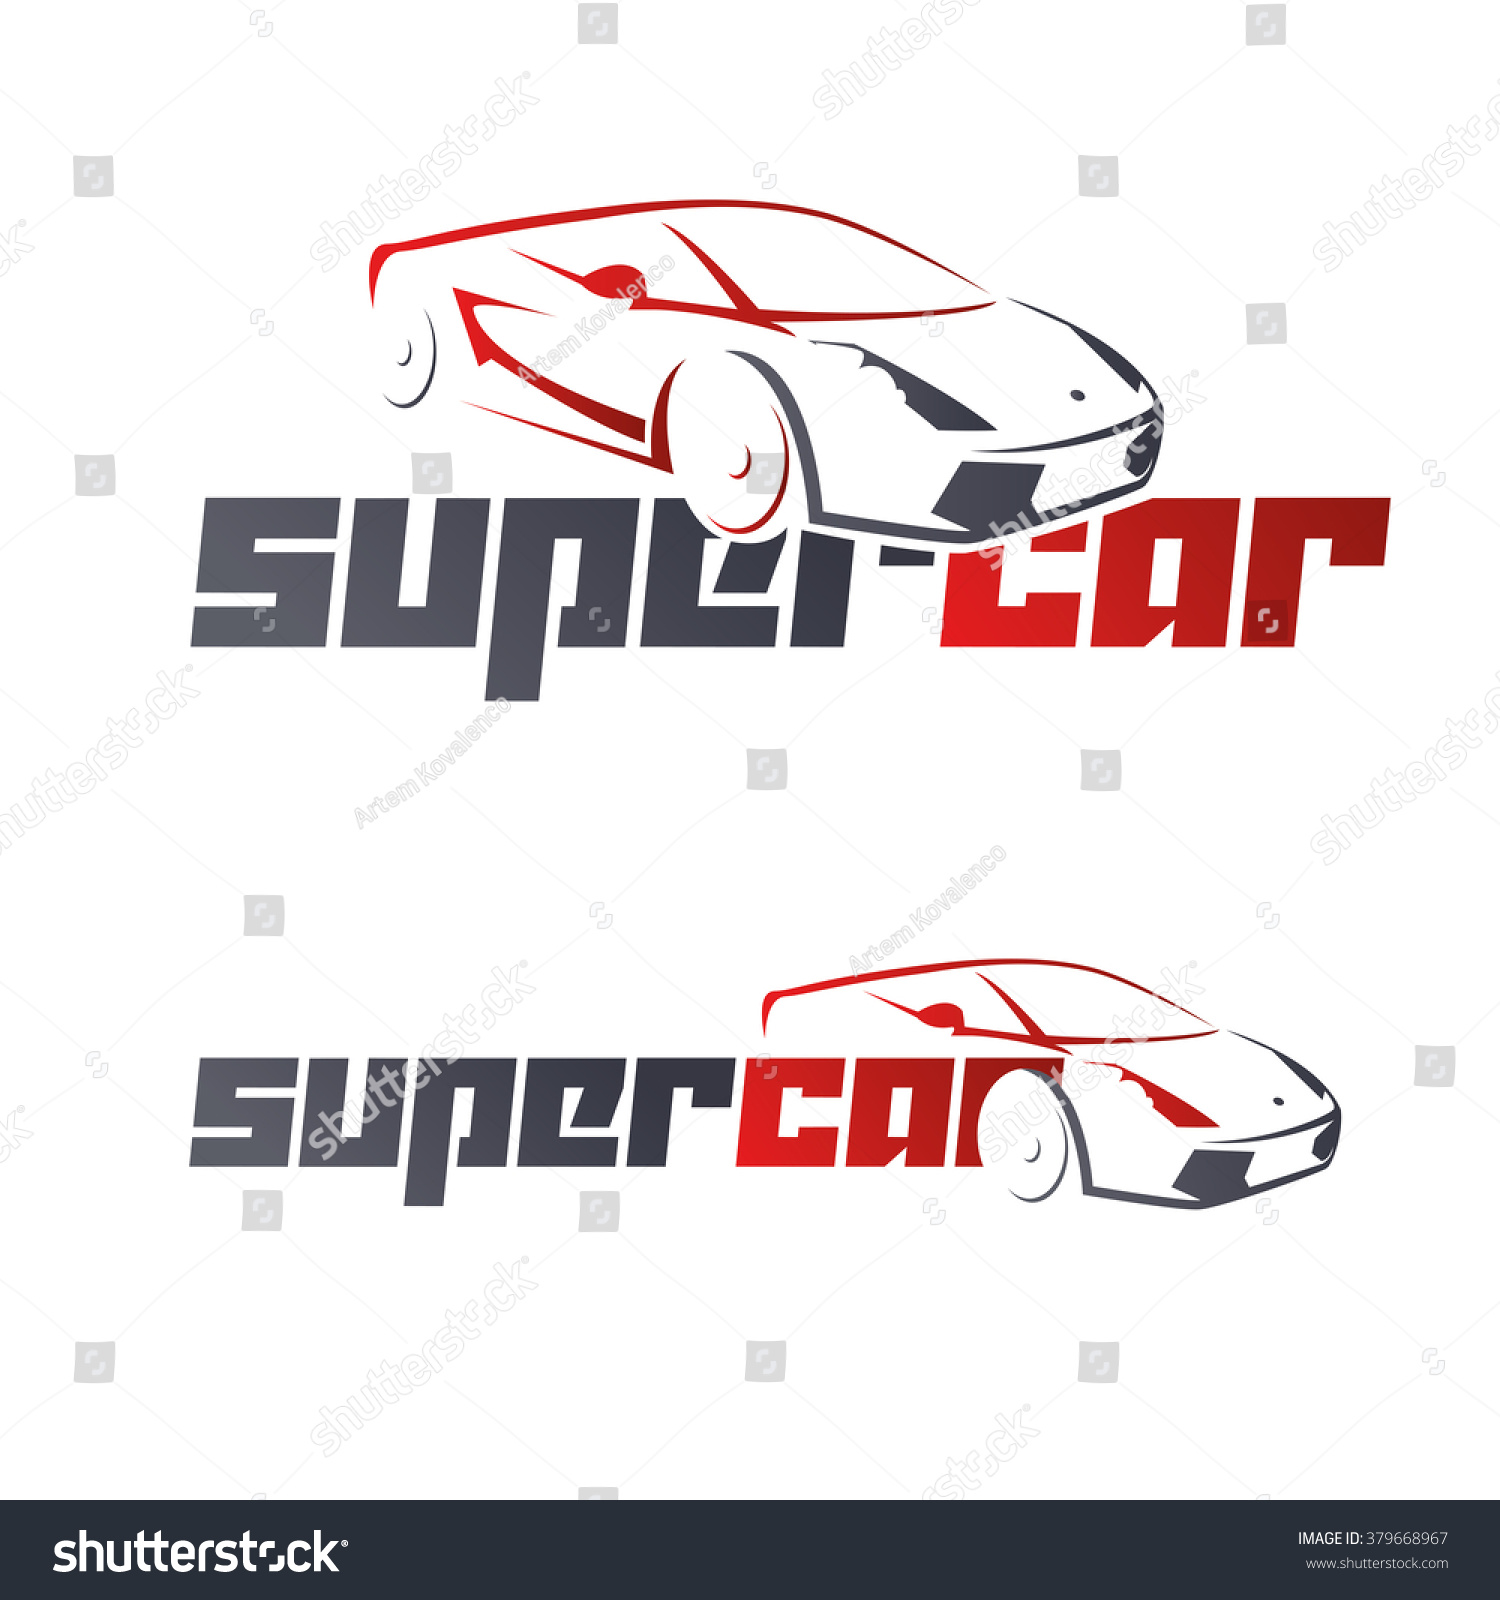 Abstract Car Design Concept Automotive Topics Stockvector